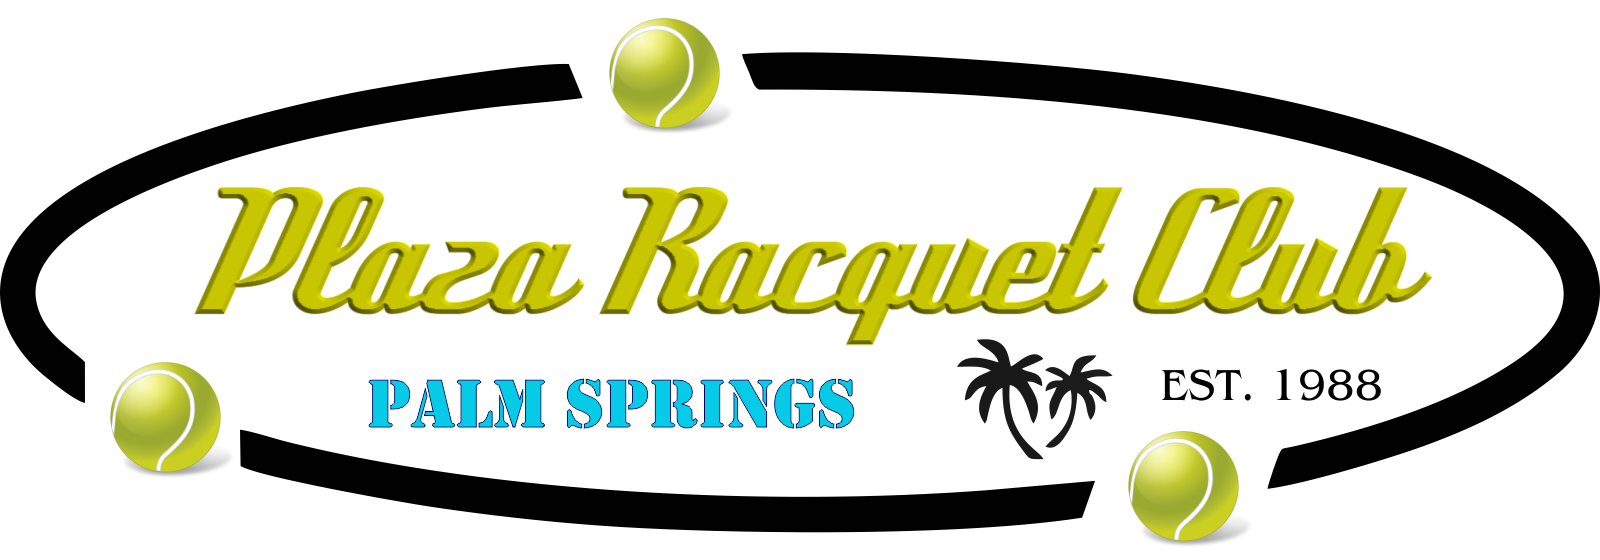 Plaza Racquet Club